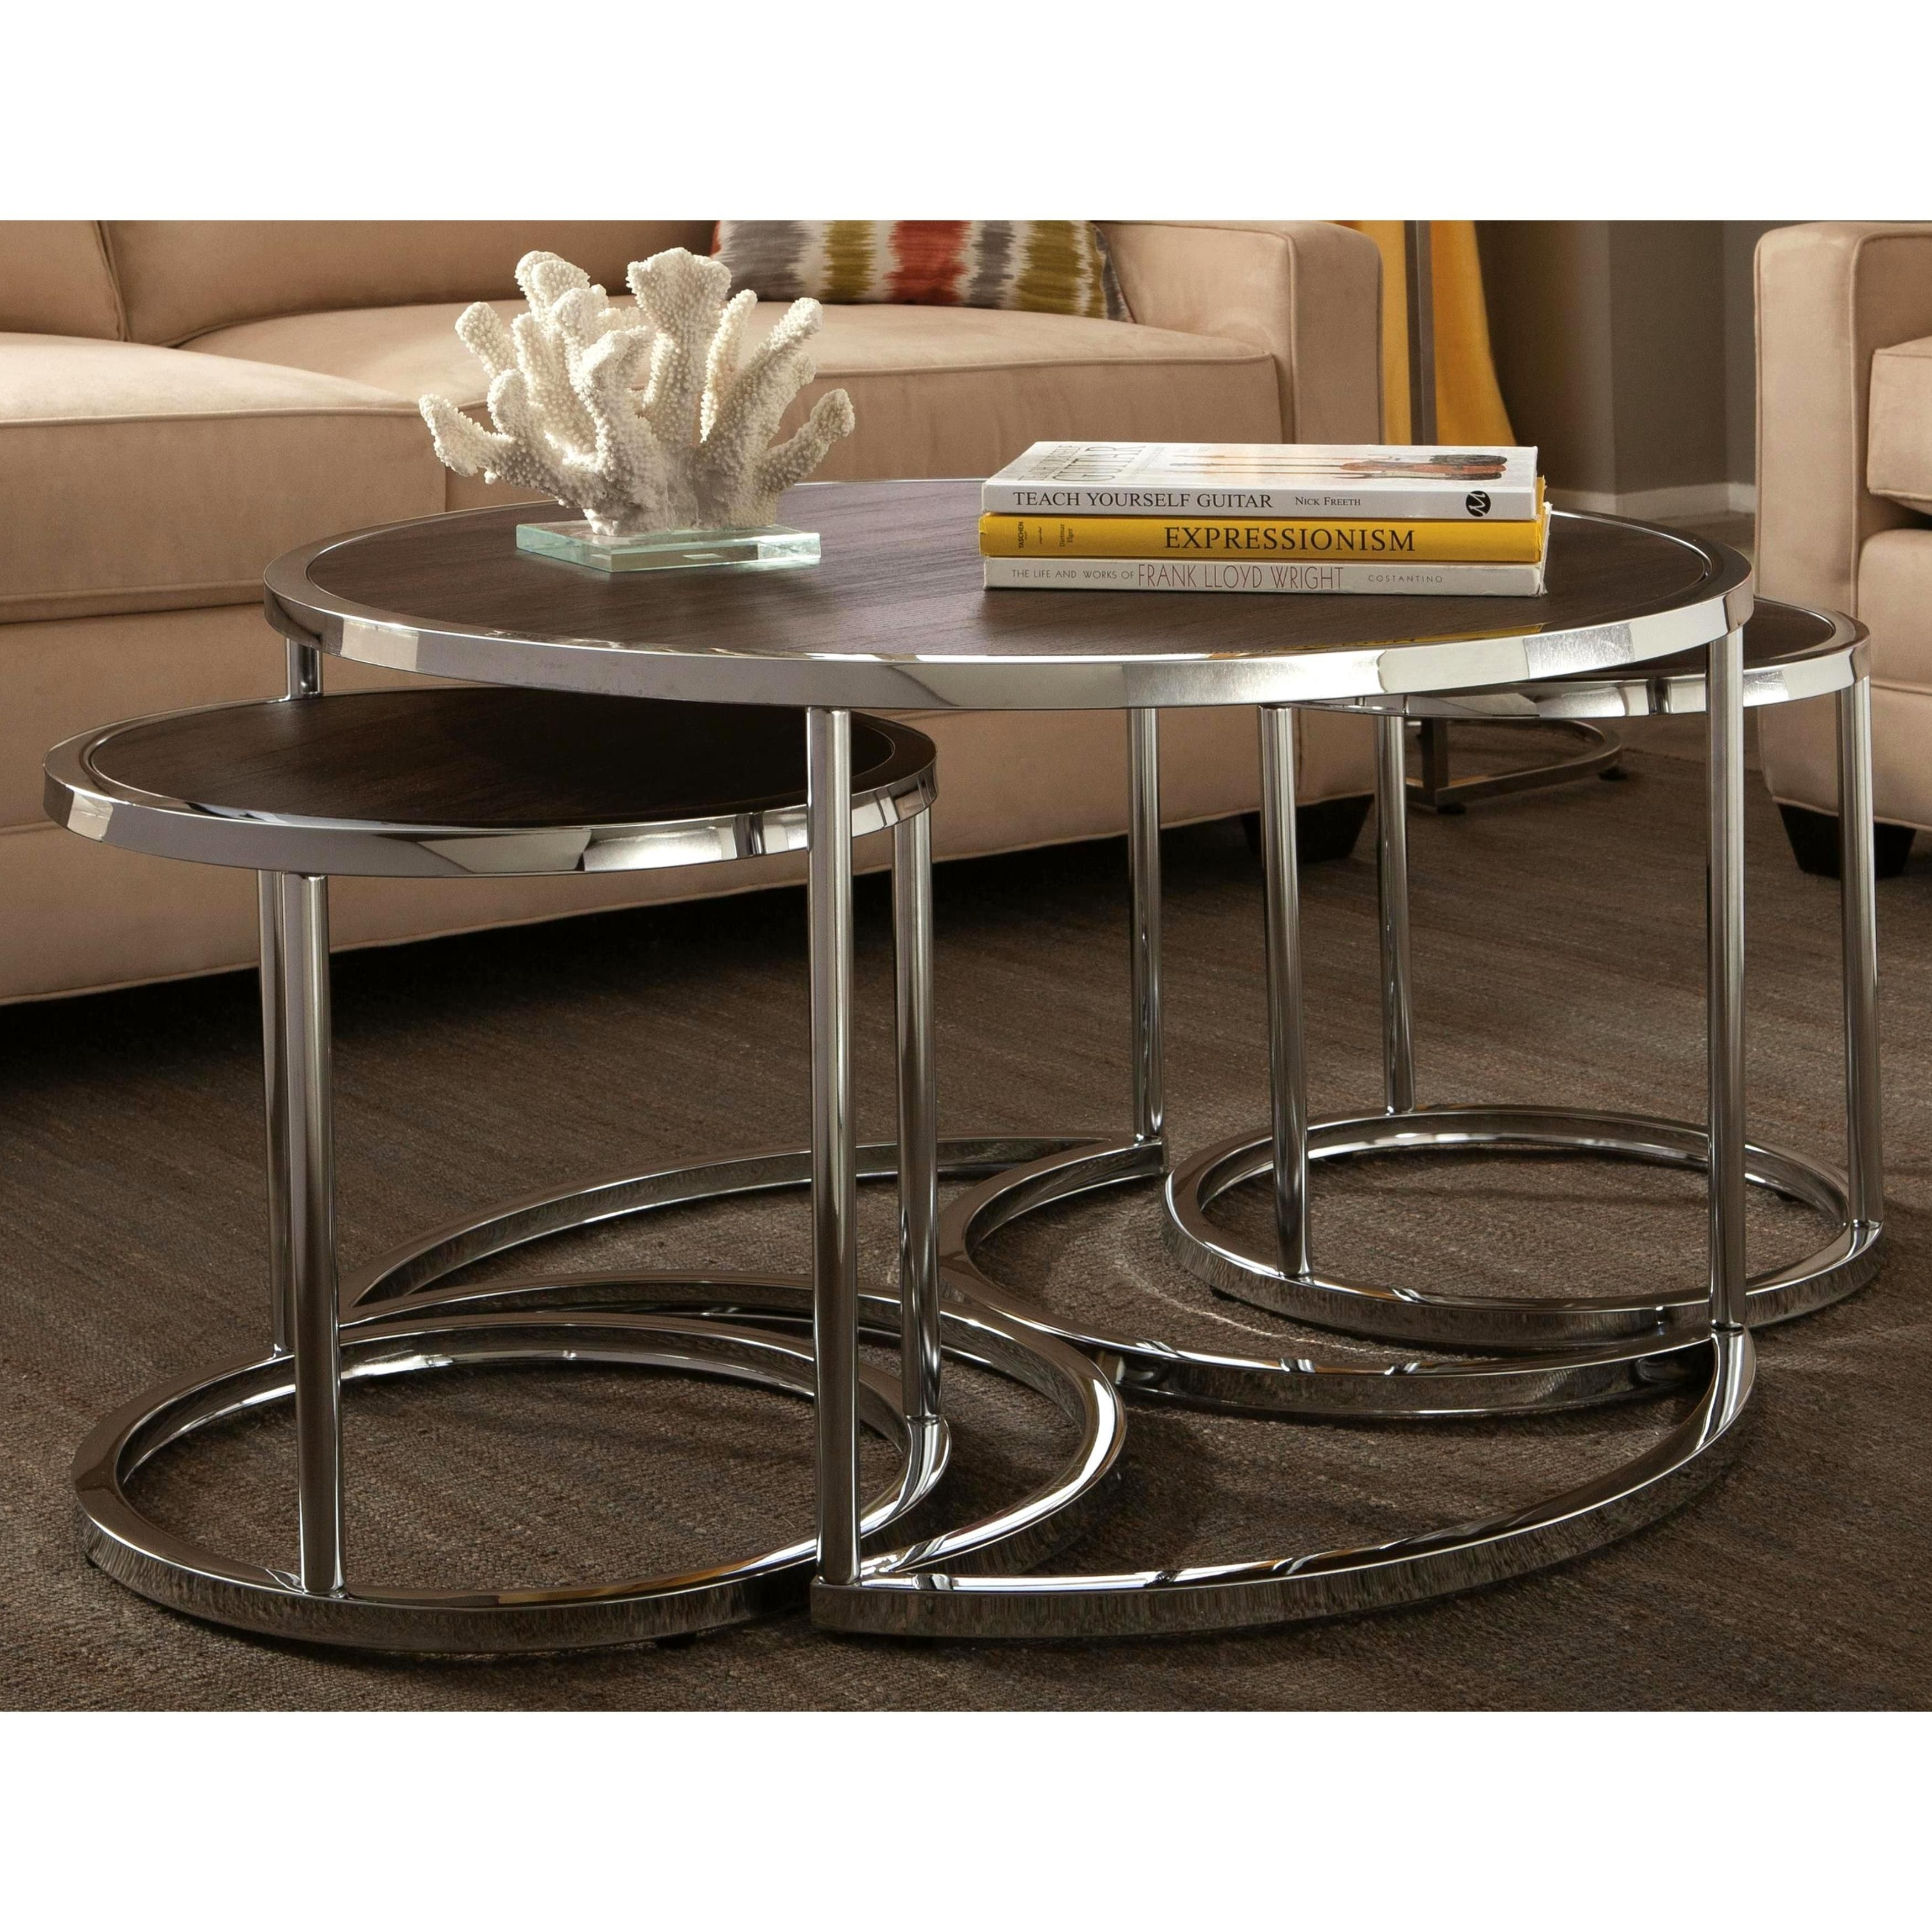 Tthe Chrome Base Combined With A Cappuccino Wood Top Create A Very for Expressionist Coffee Tables (Image 26 of 30)